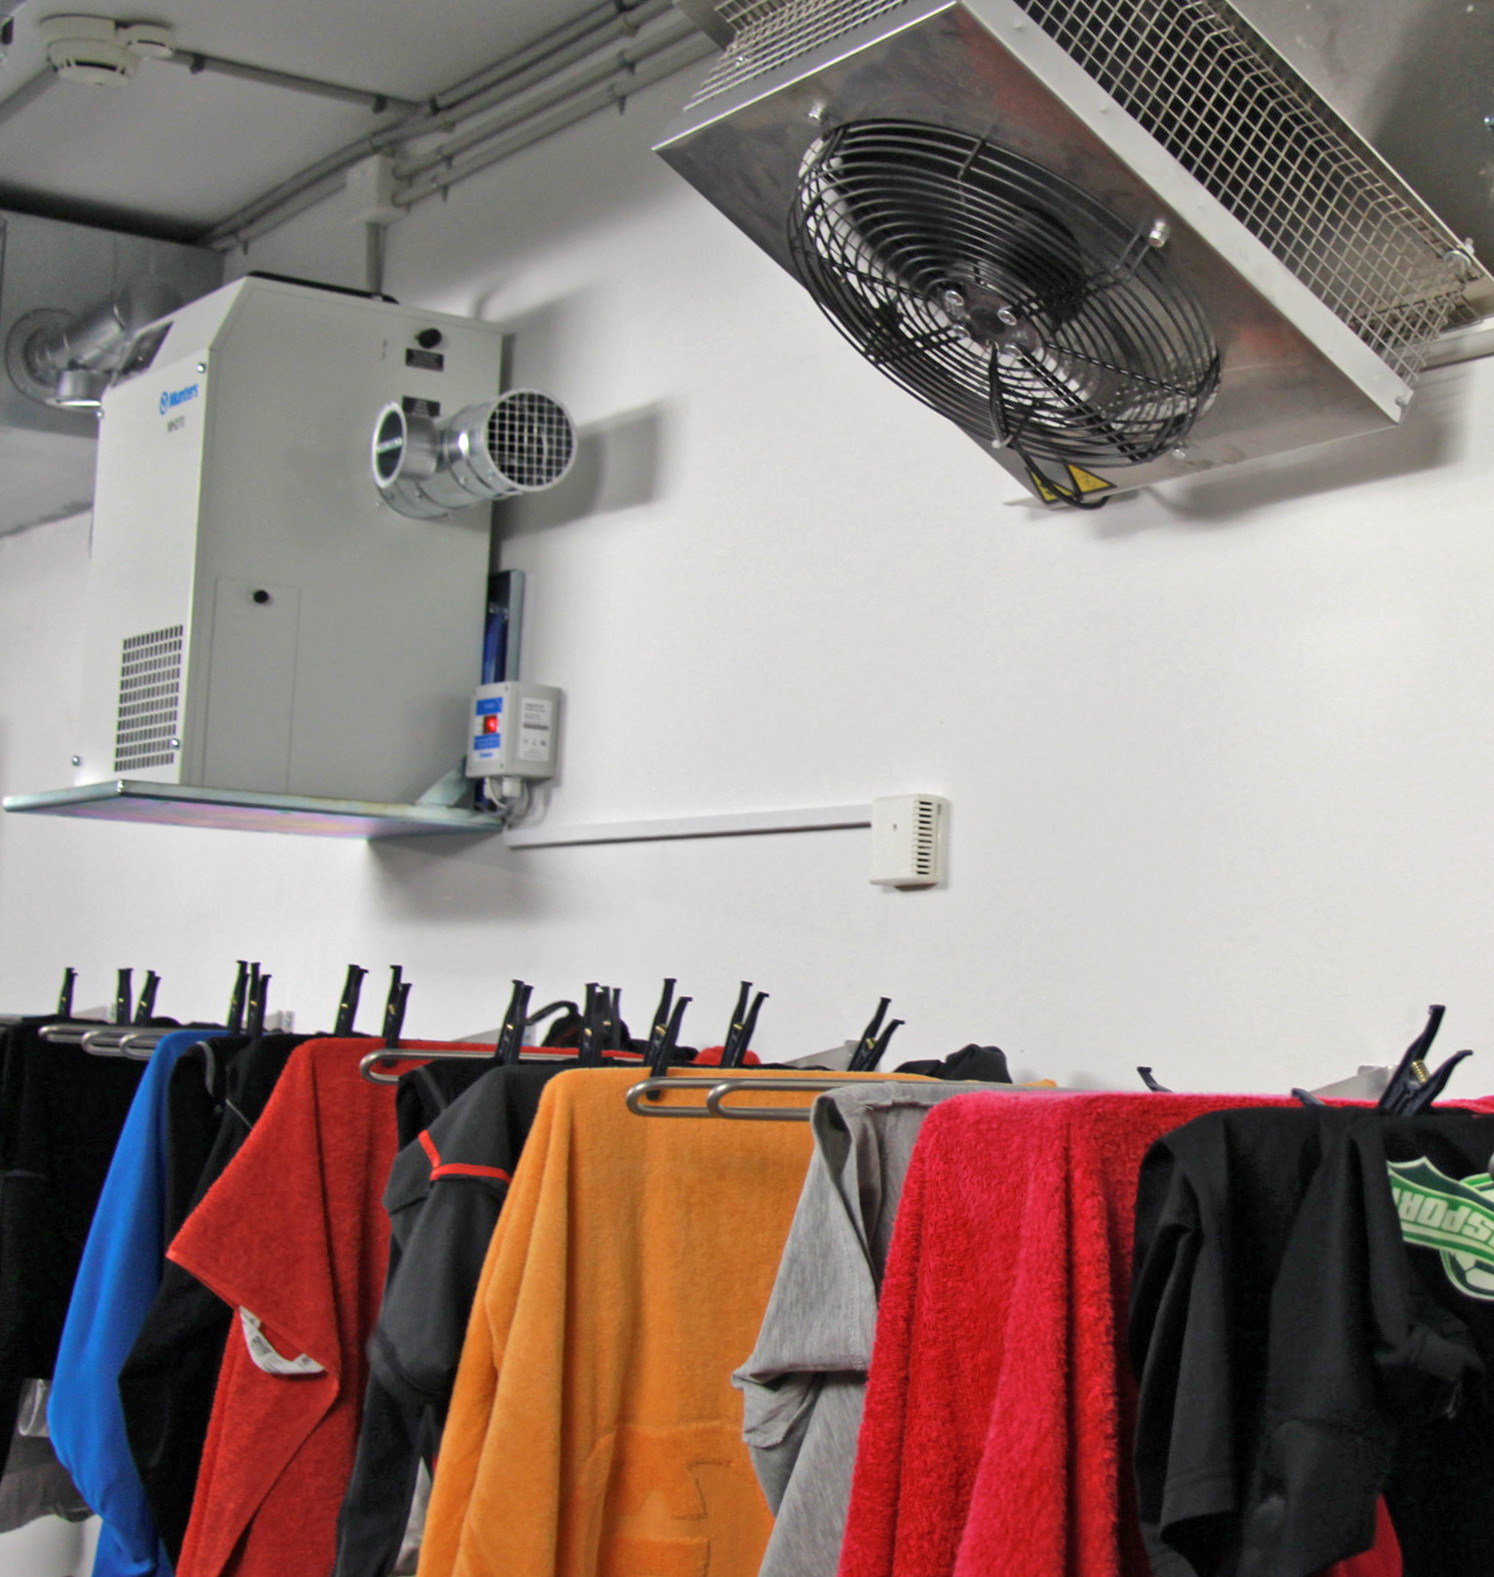 Clothes_in_DryingRoom.jpg